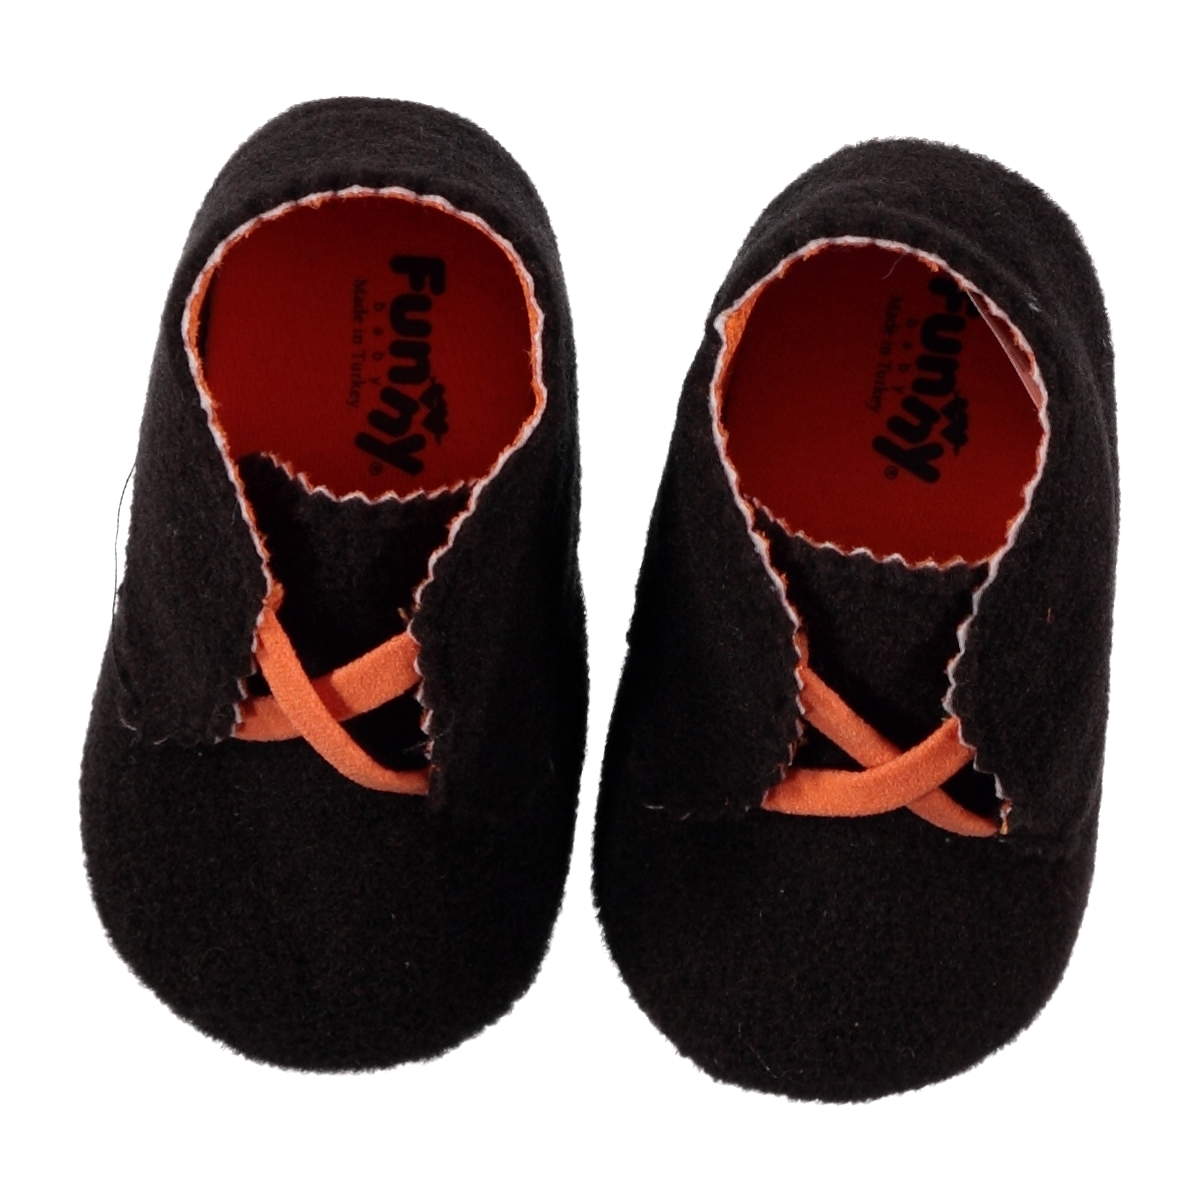 Funny Baby Brown Baby Boy Booties 16-19 Number